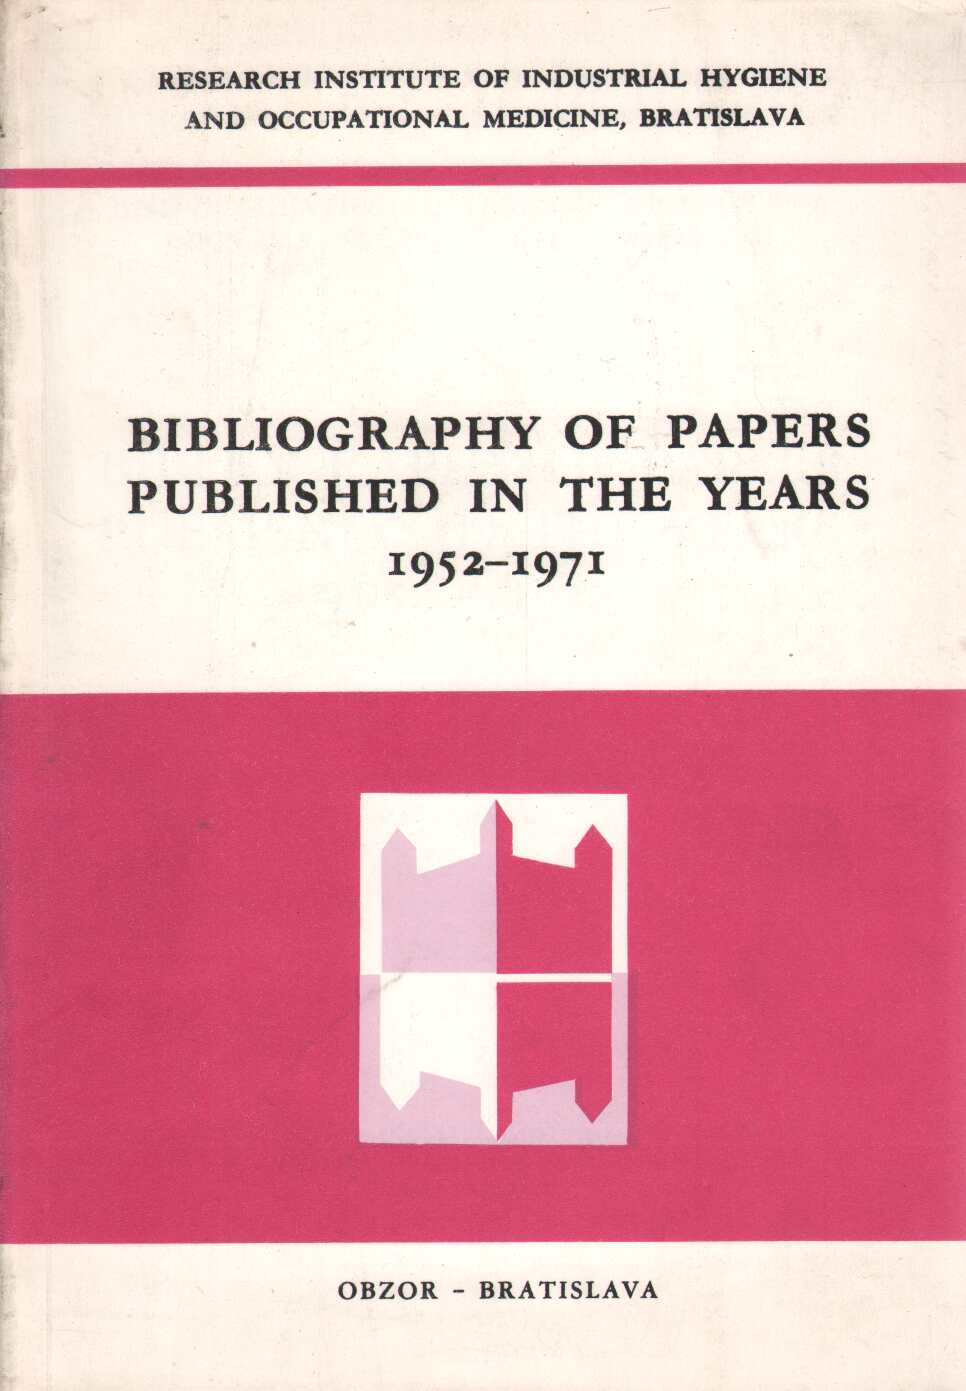 Hanicová K. - Bibliography of papers published in the years 1952-1971